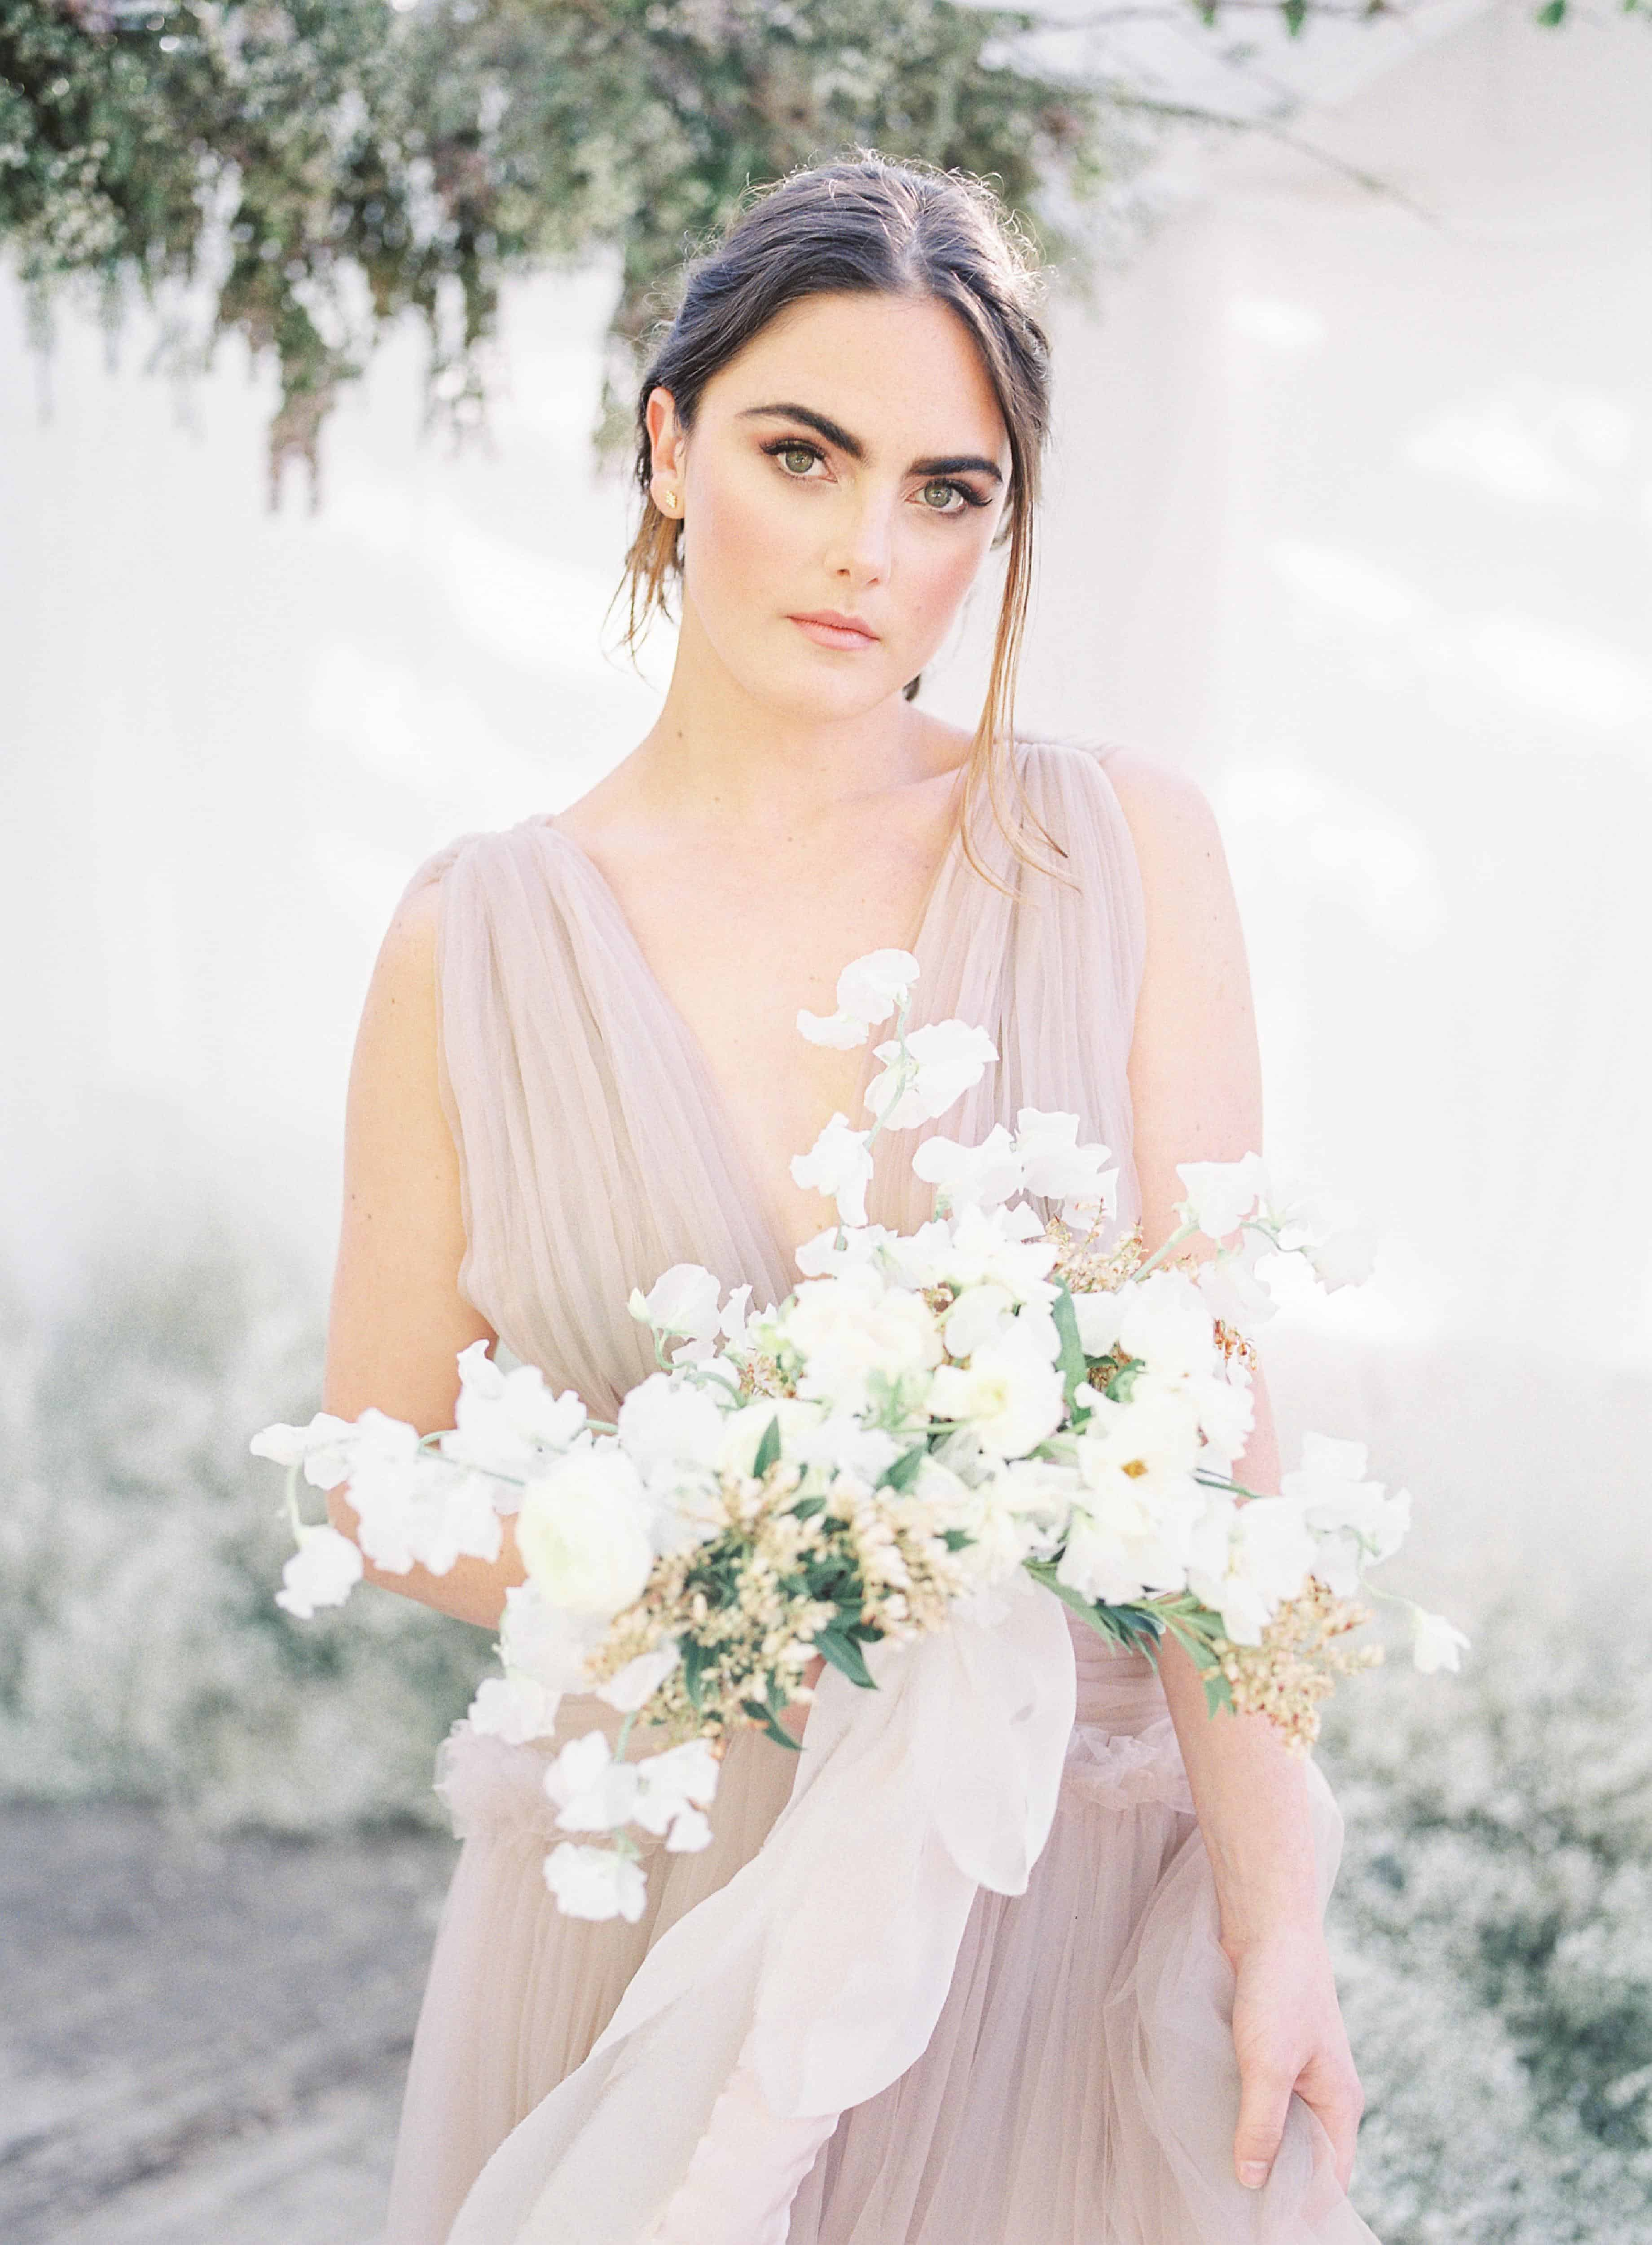 Grecian Styled Shoot Inspired by Crystals - Real Weddings